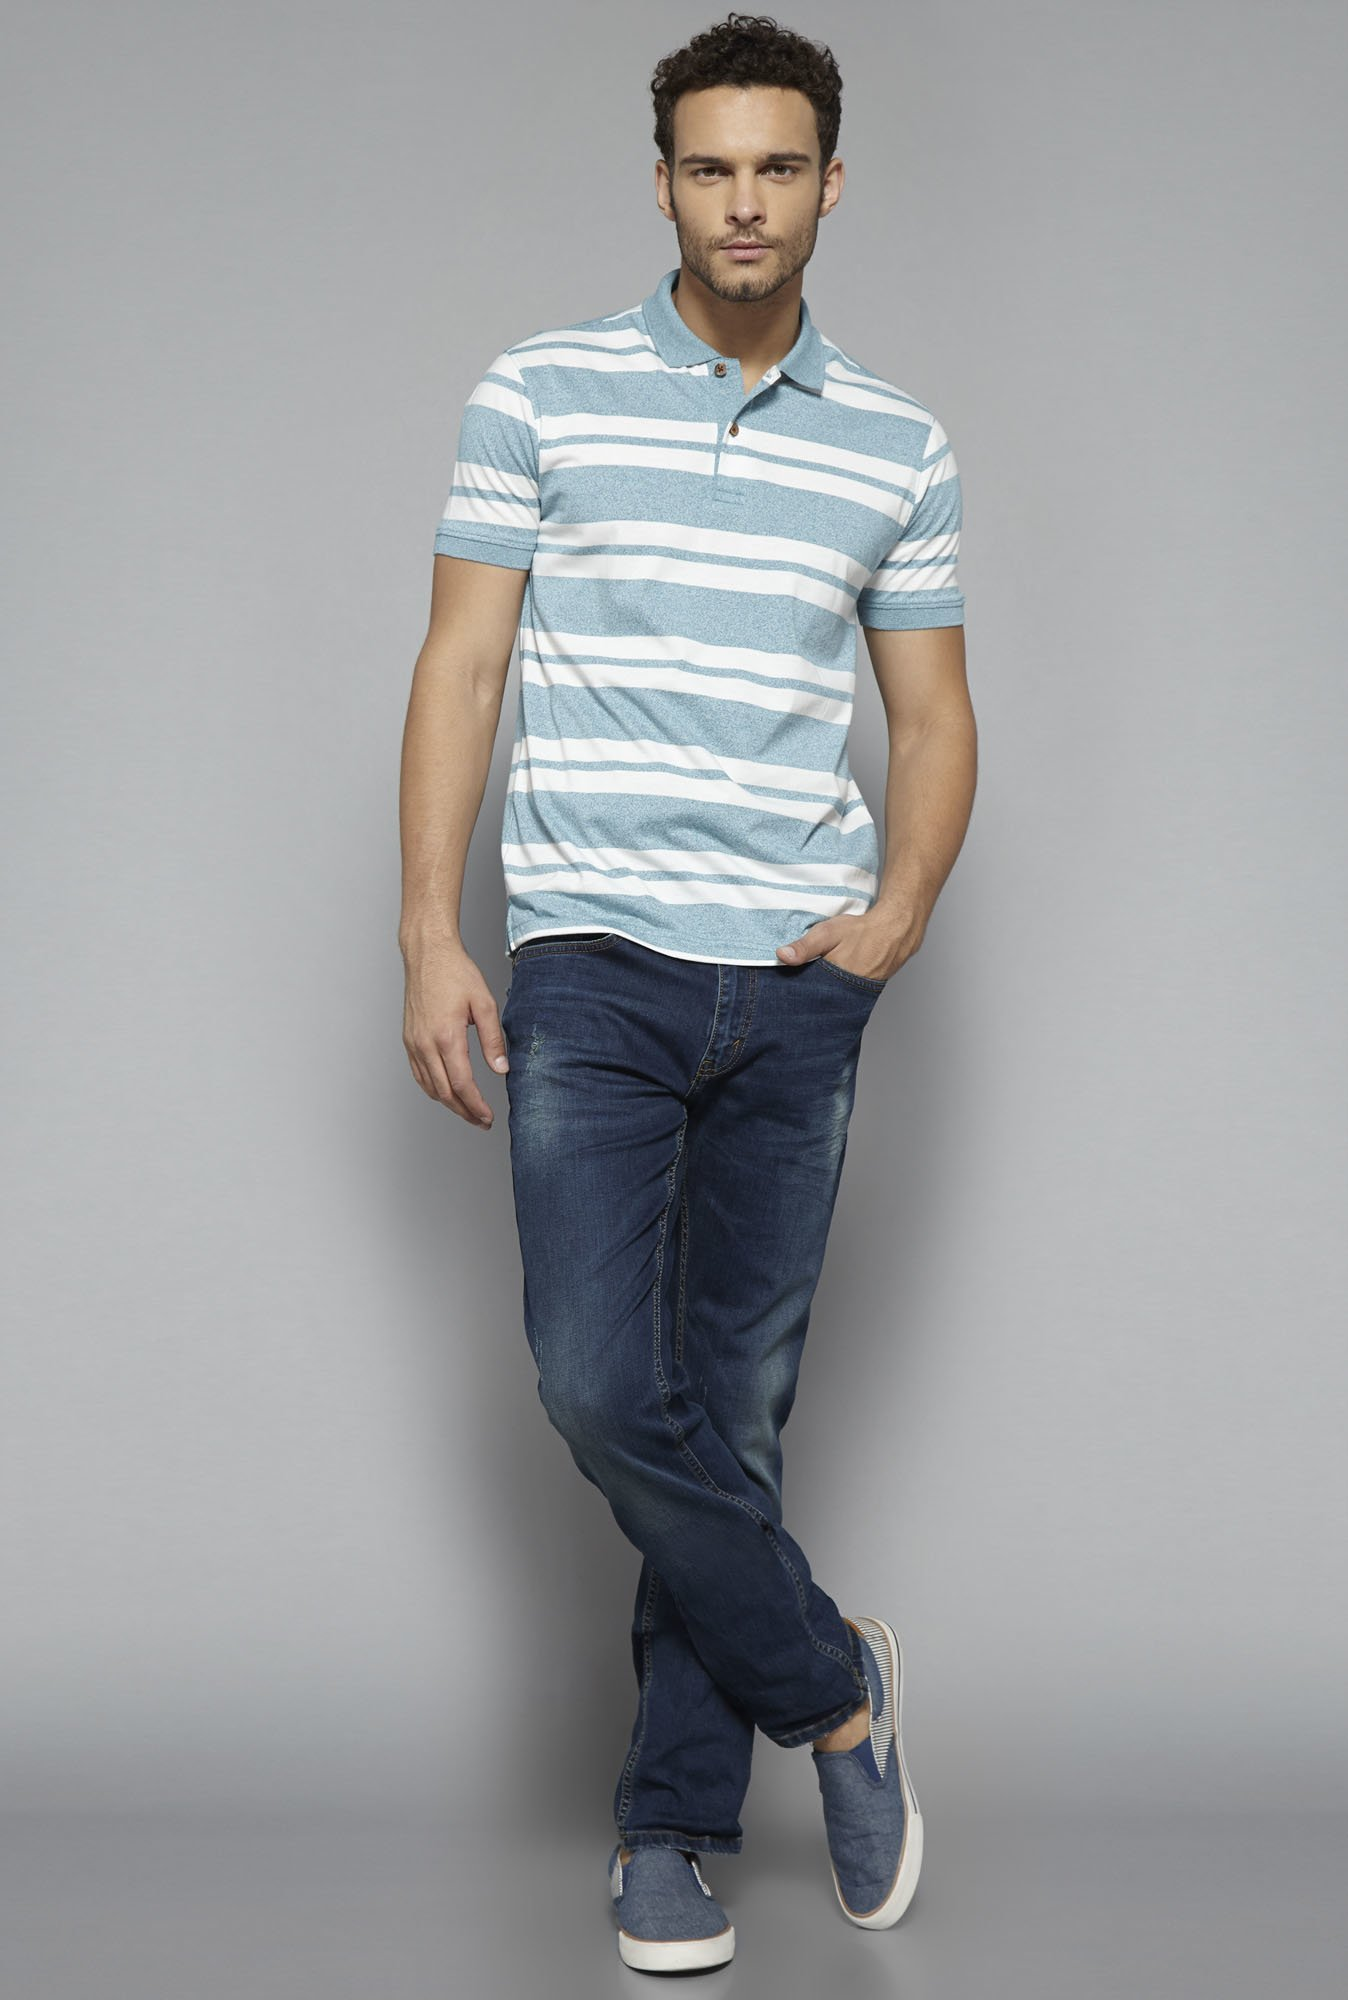 Westsport by Westside Blue Striped T Shirt